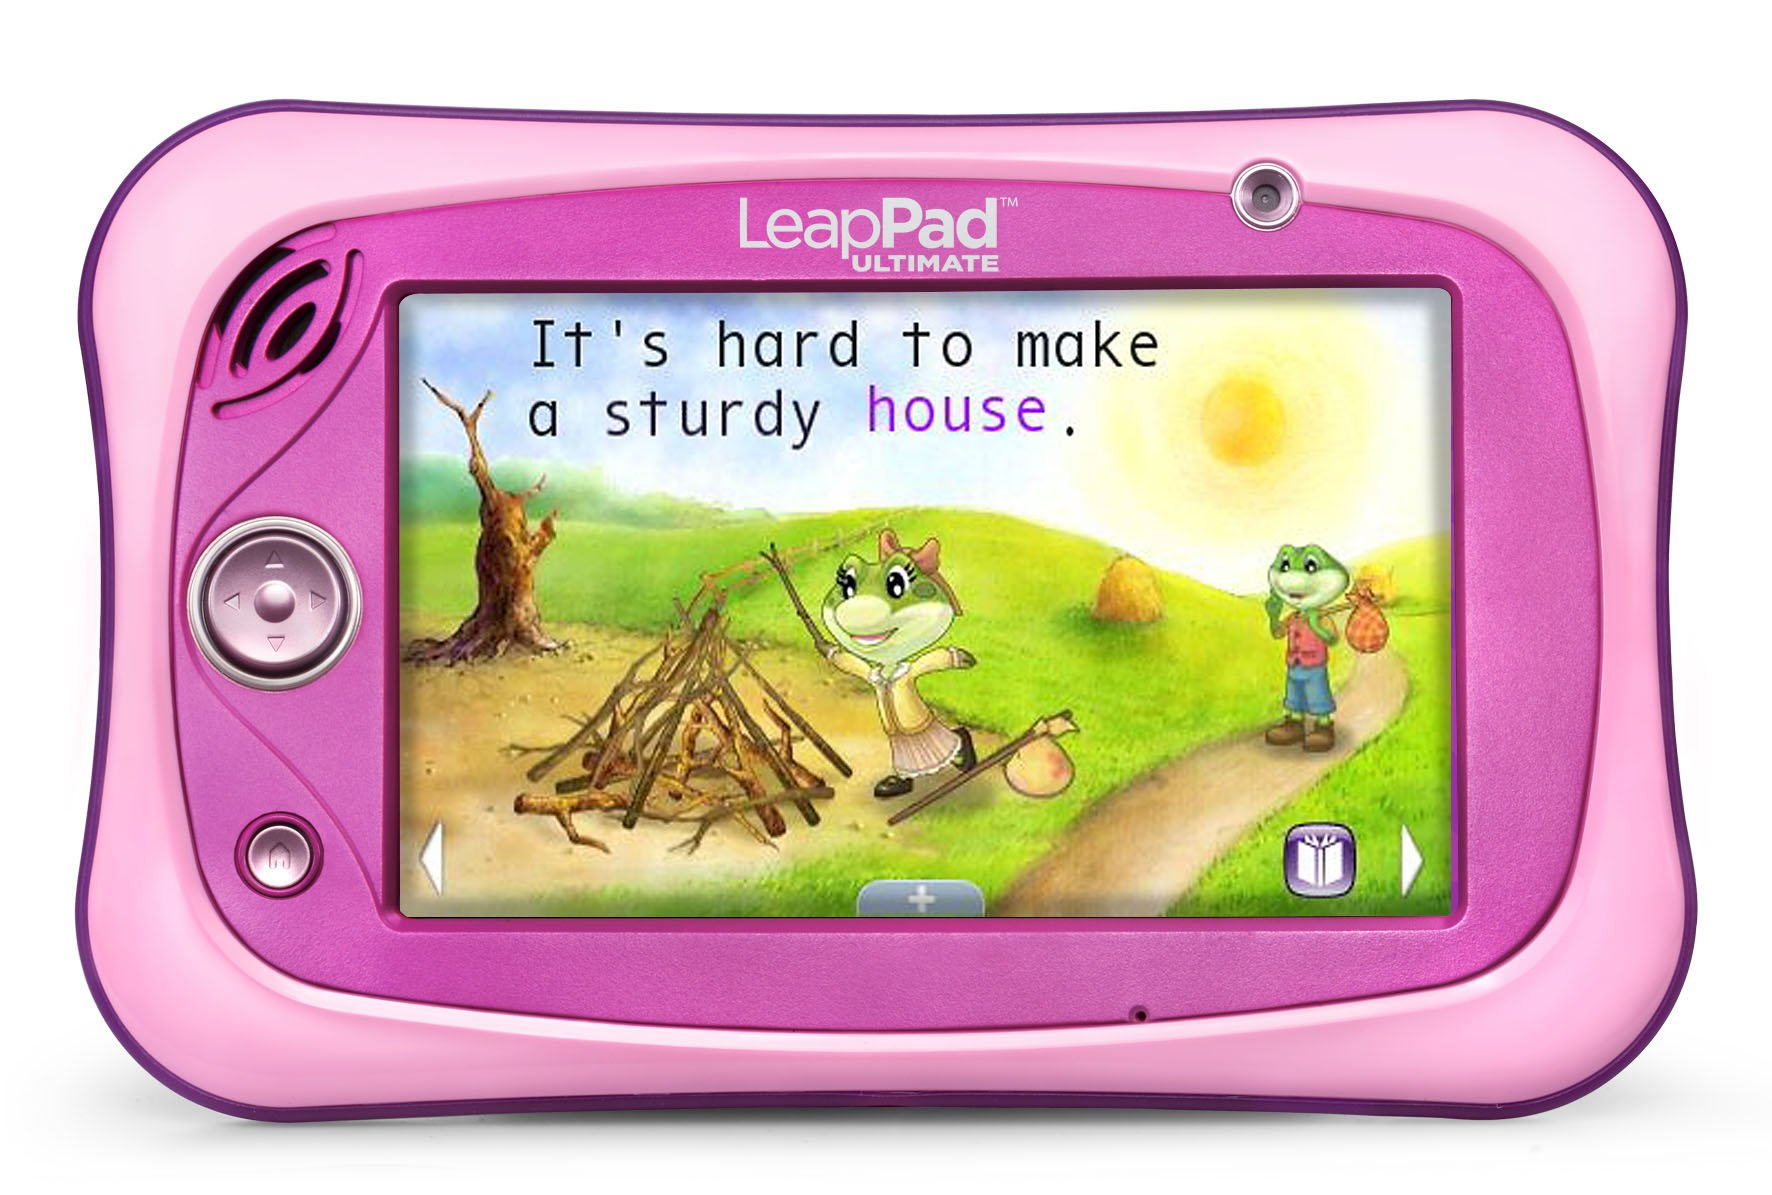 LeapFrog LeapPad Ultimate Ready for School Tablet, Pink by LeapFrog (Image #4)